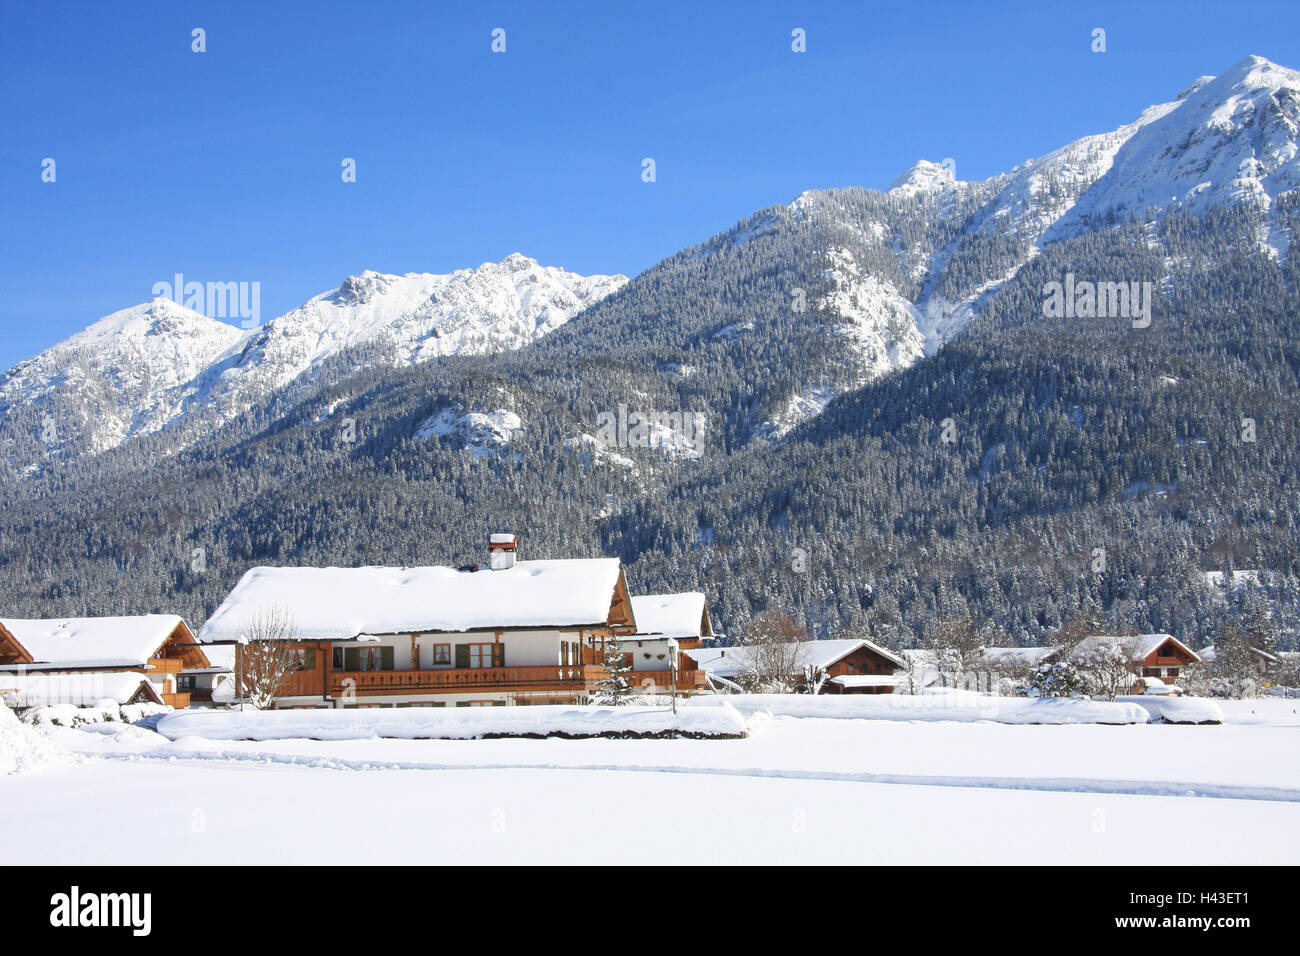 Germany, Bavaria, Werdenfels, embankment region, local view, to Soiern, South Germany, Upper Bavaria, place, building, - Stock Image